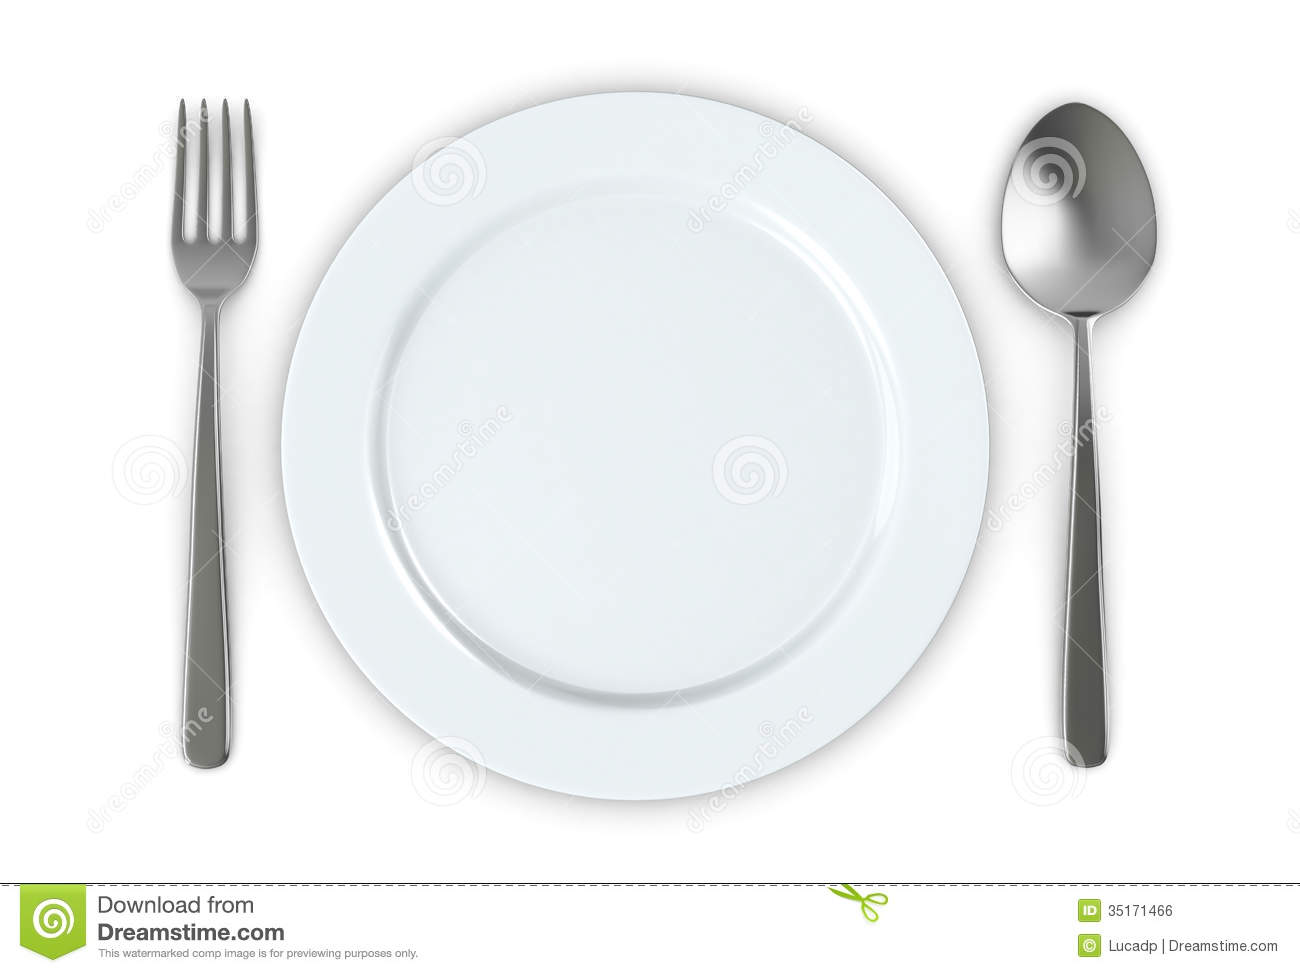 Xl Green Egg Table Plans Plate And Cutlery Royalty Free Stock Image - Image: 35171466